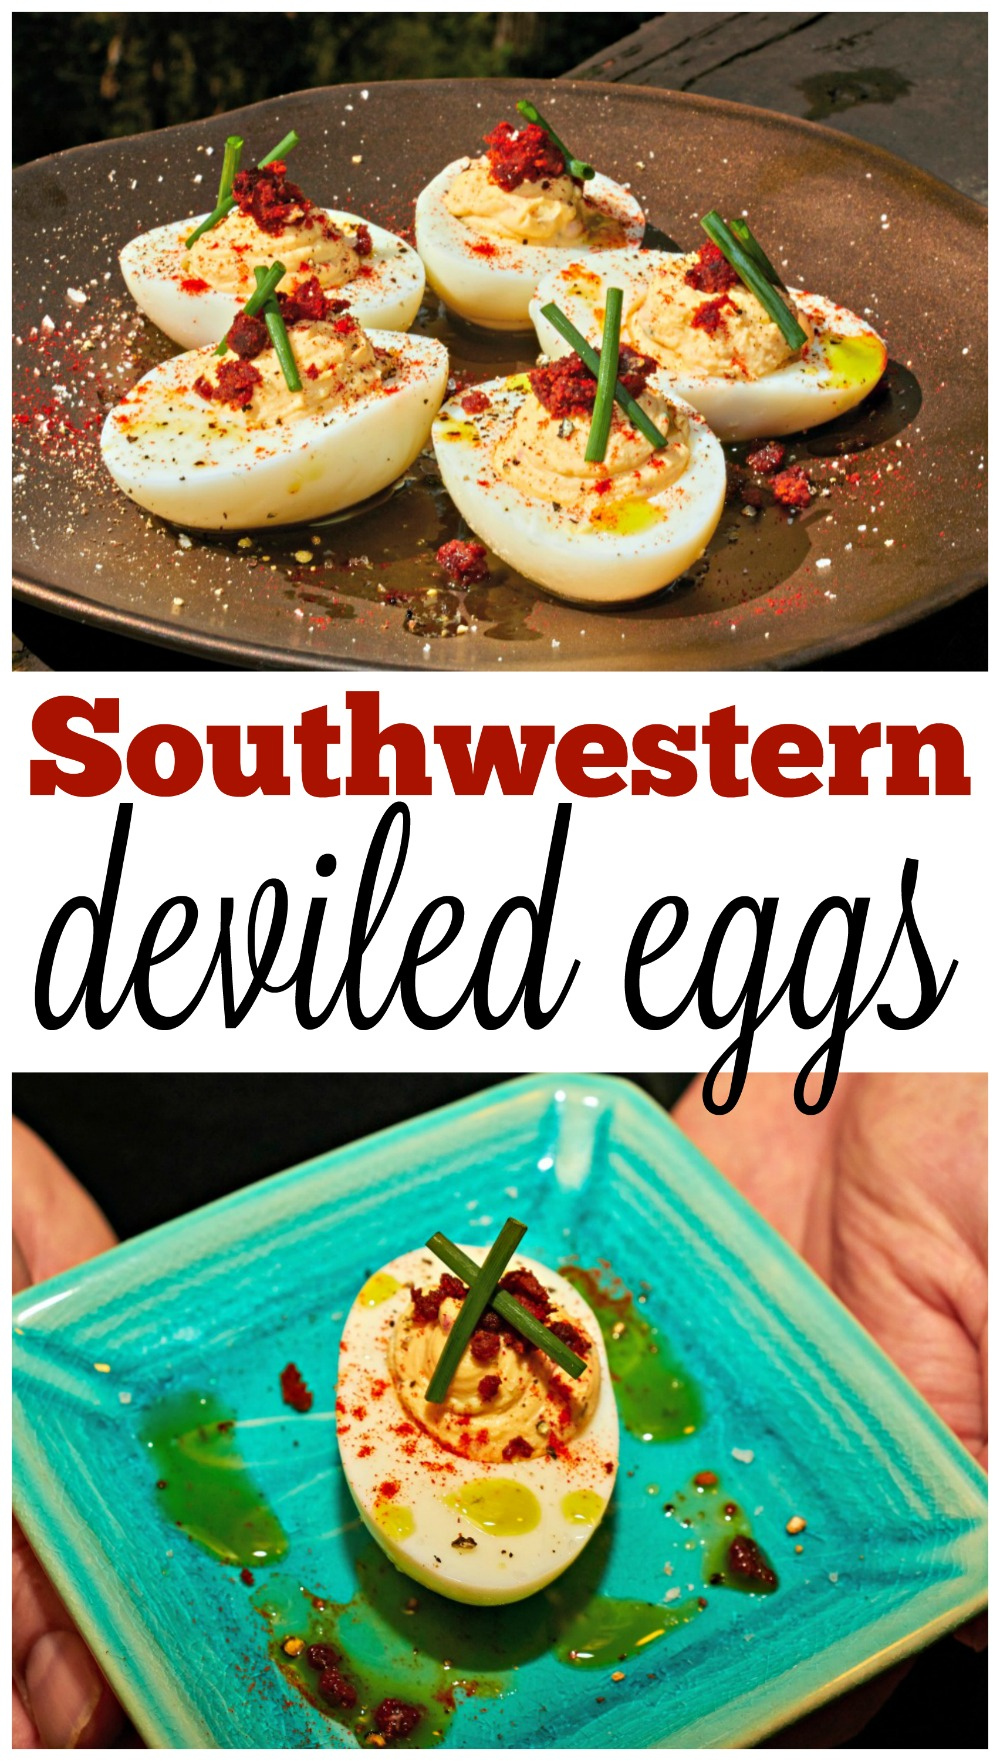 Southwestern Deviled Eggs